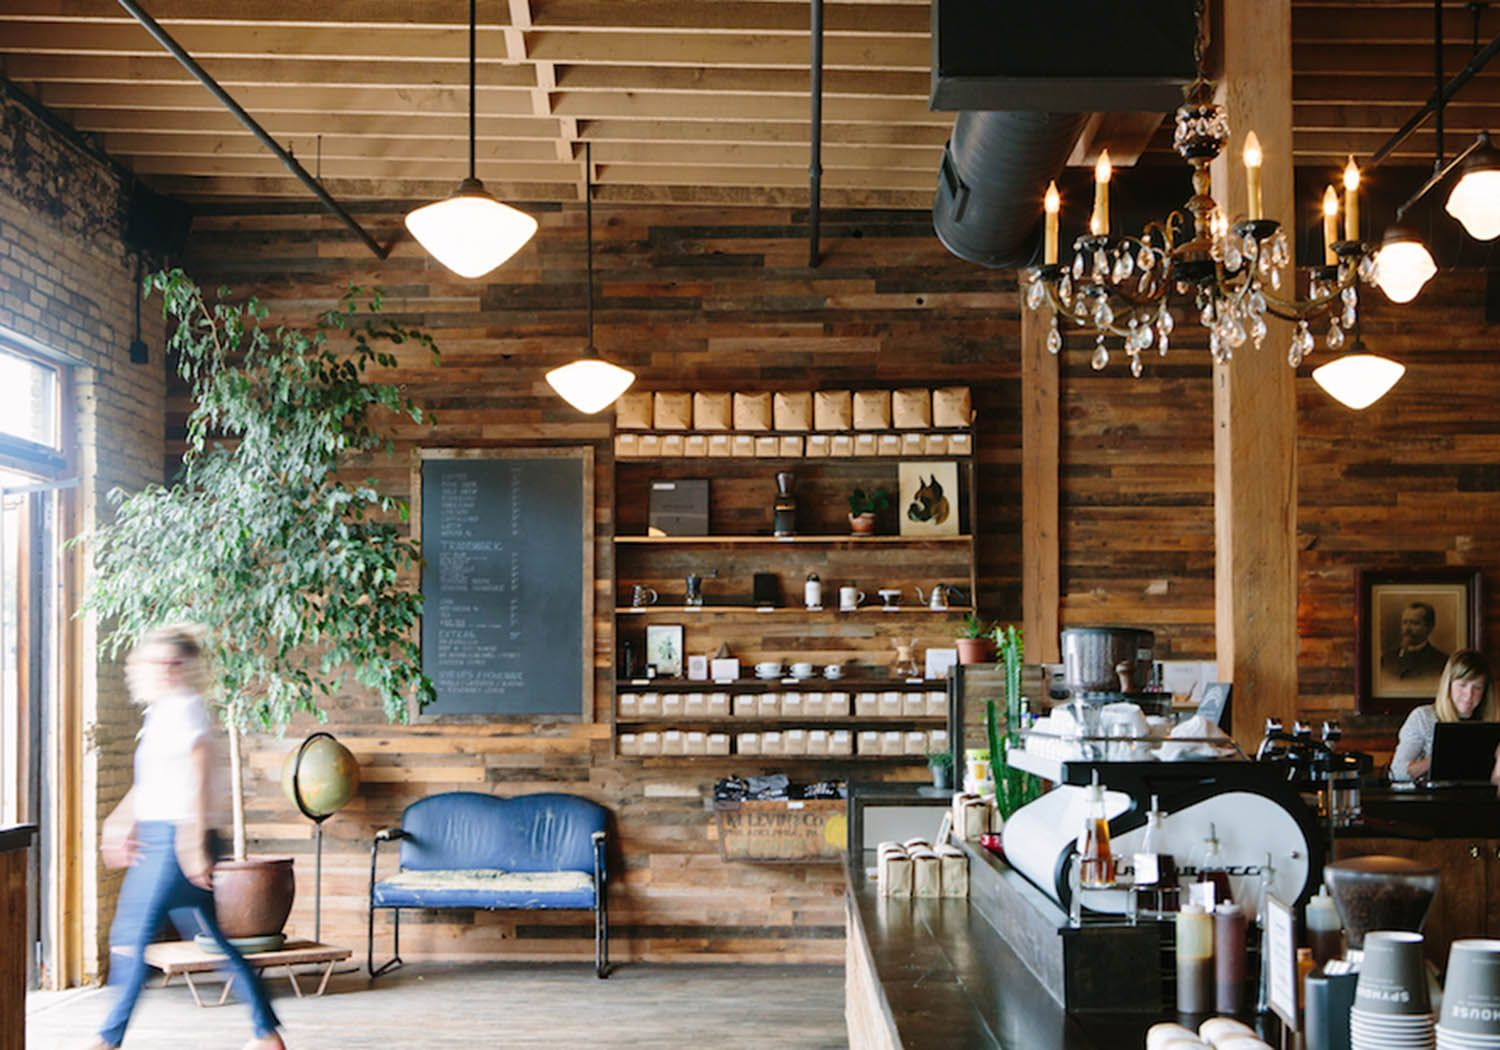 Warm Distressed Wood Surrounds This Rustic Coffee Shop Modern Pendant Lightings And Dainty Chandelier Add A Touch Of Glamour To The Cafe